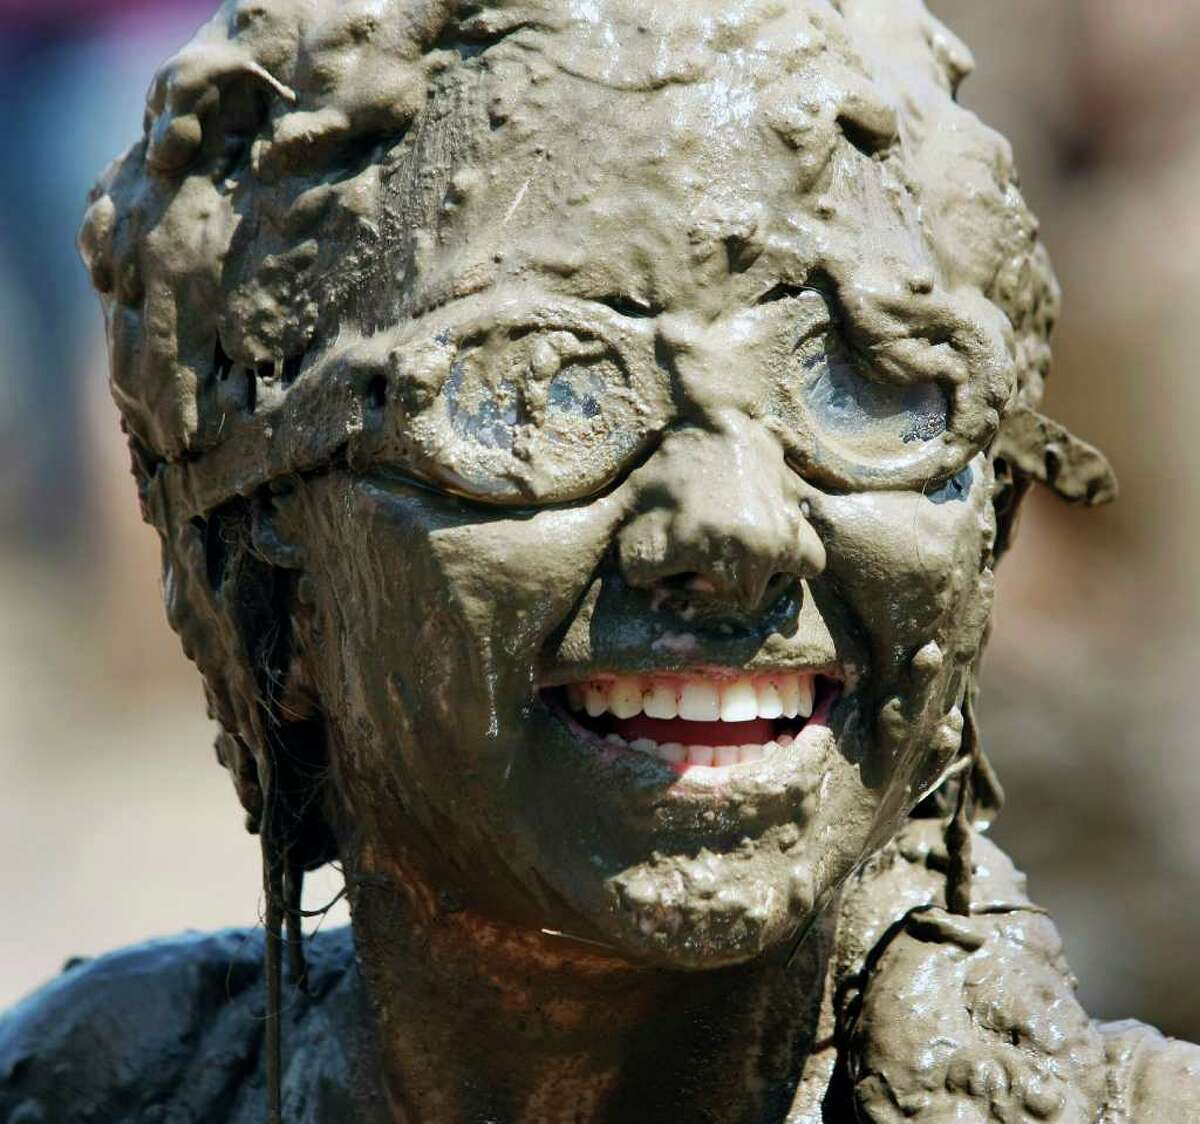 WESTLAND, MI - JULY 12: A girl smiles while covered in mud during Wayne County's 2011 Mud Day event at Nankin Mills Park July 12, 2011 in Westland, Michigan. The annual event consists of 20,000 gallons of water mixed with 200 tons of topsoil. (Photo by Bill Pugliano/Getty Images)